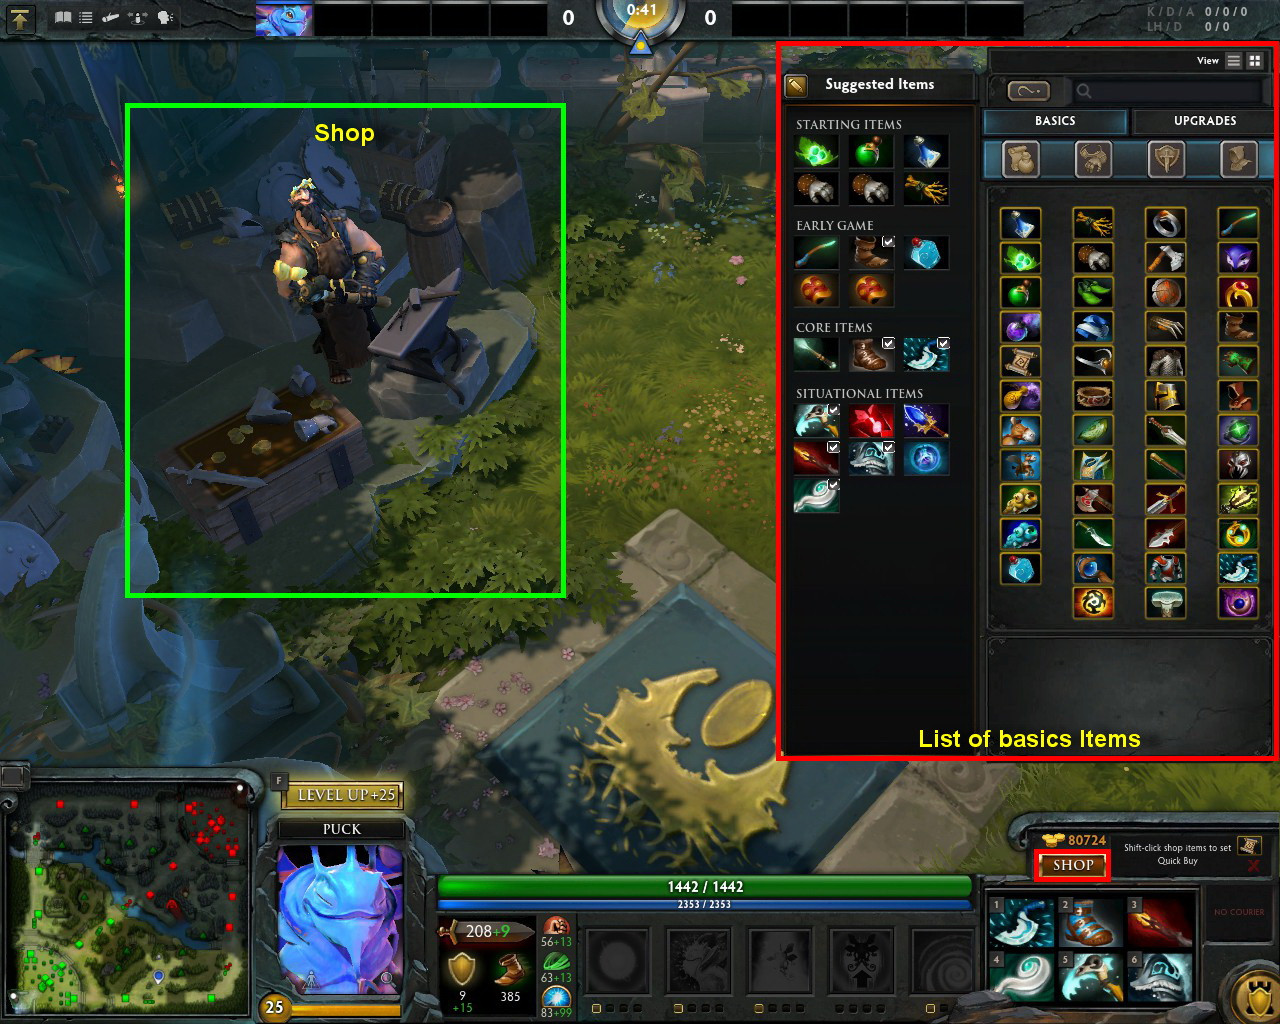 Dota 2 Using The Minus Key To Buy An Item In The